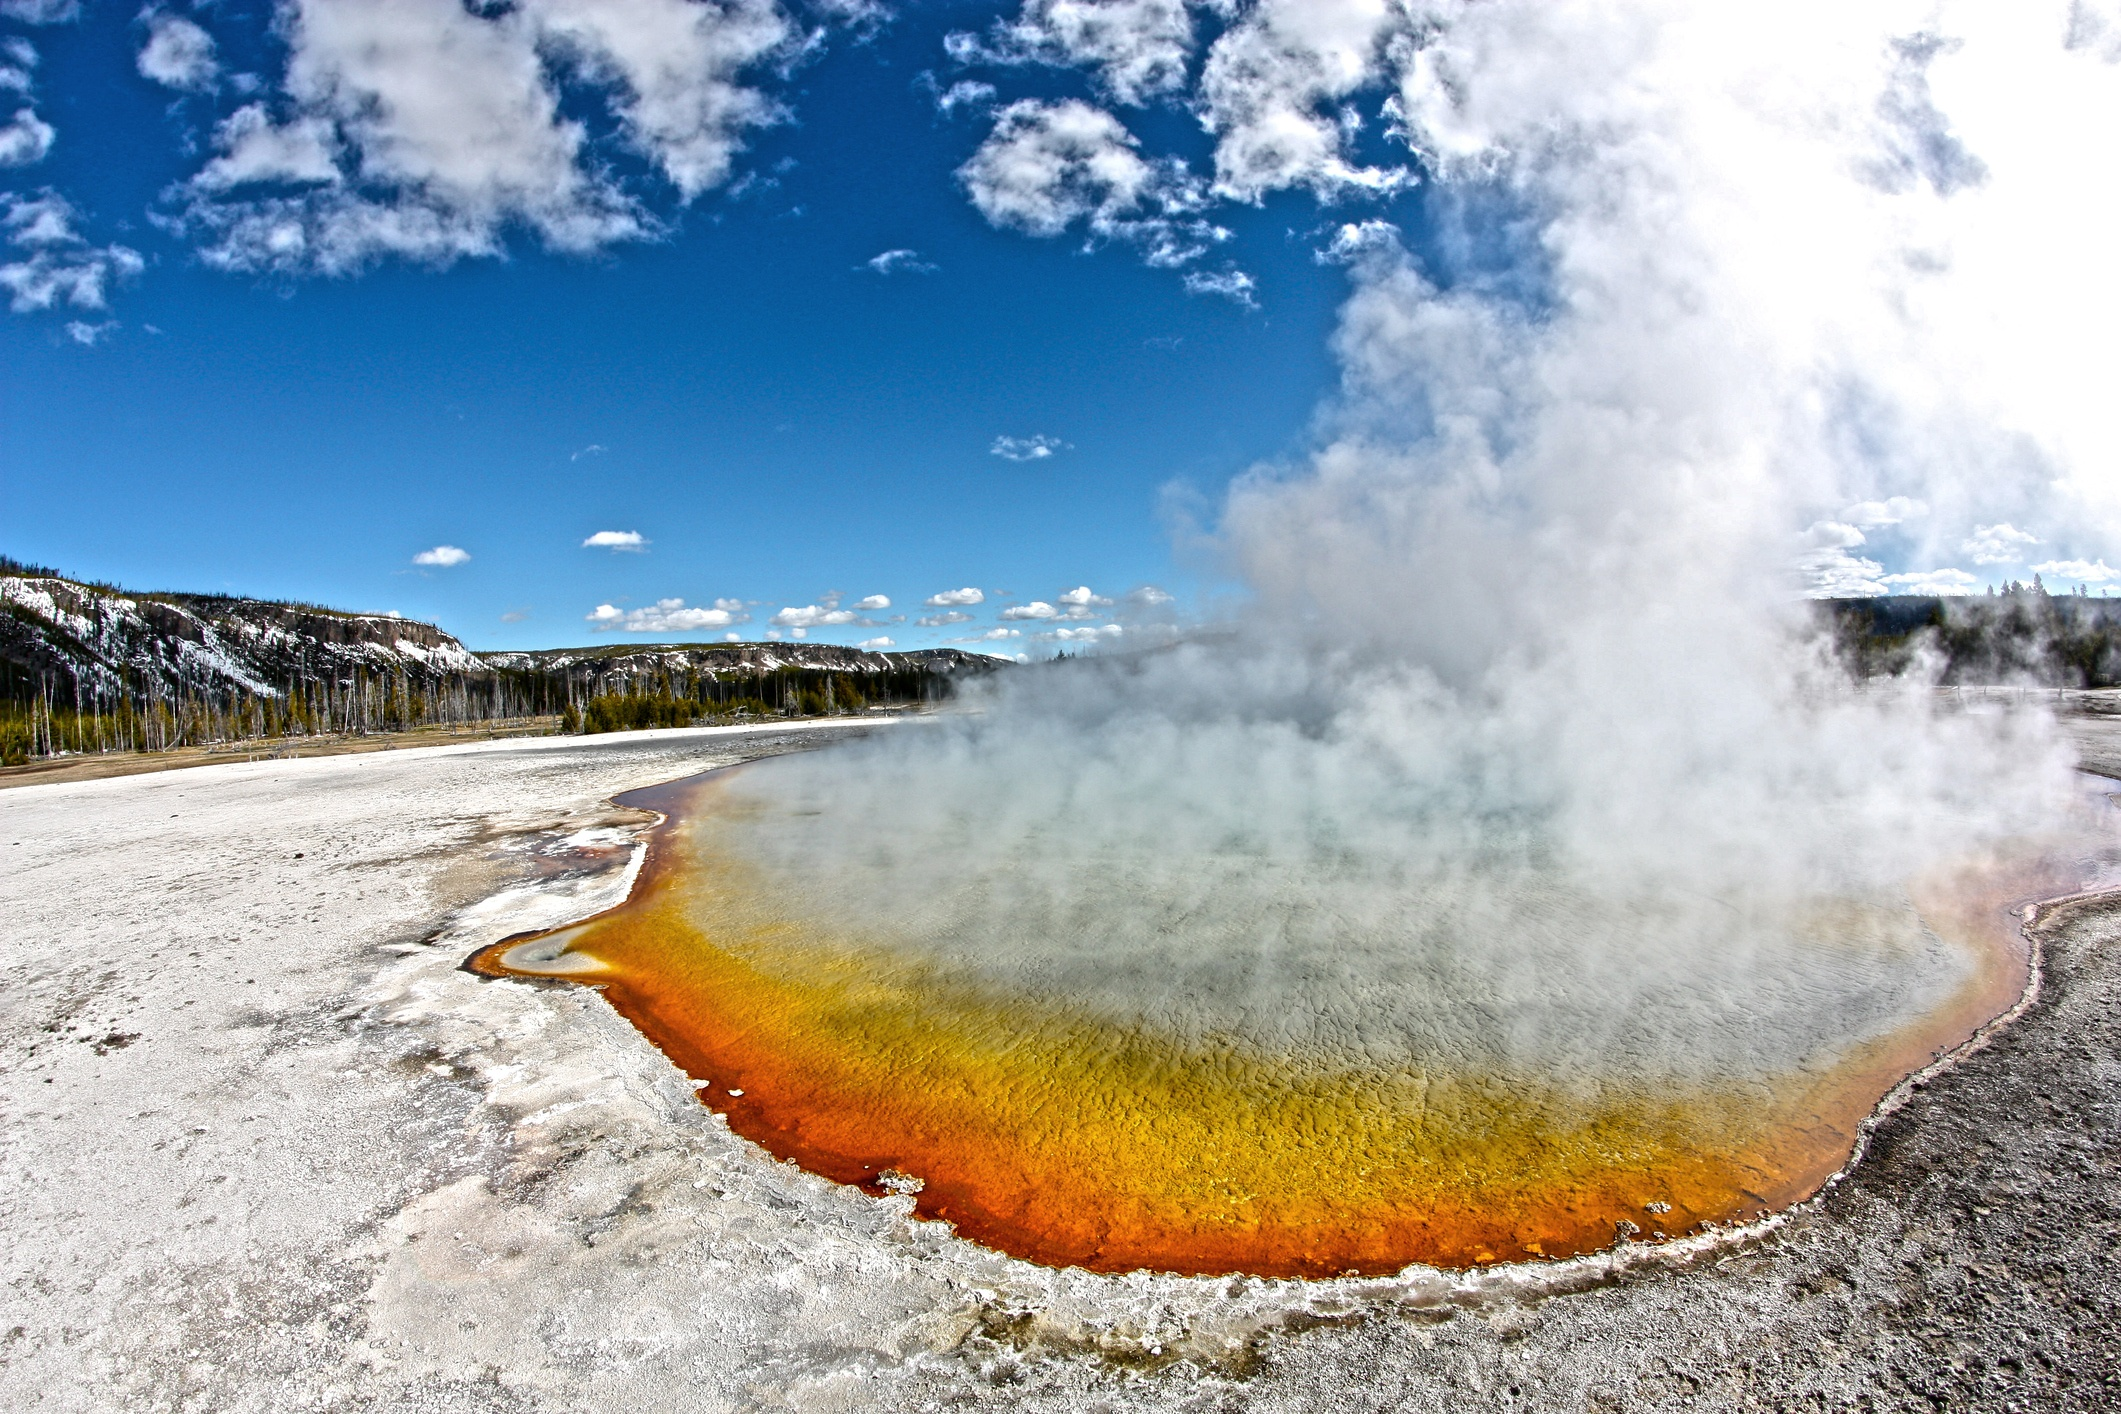 yellowstone-national-park-in-the-winter.jpg